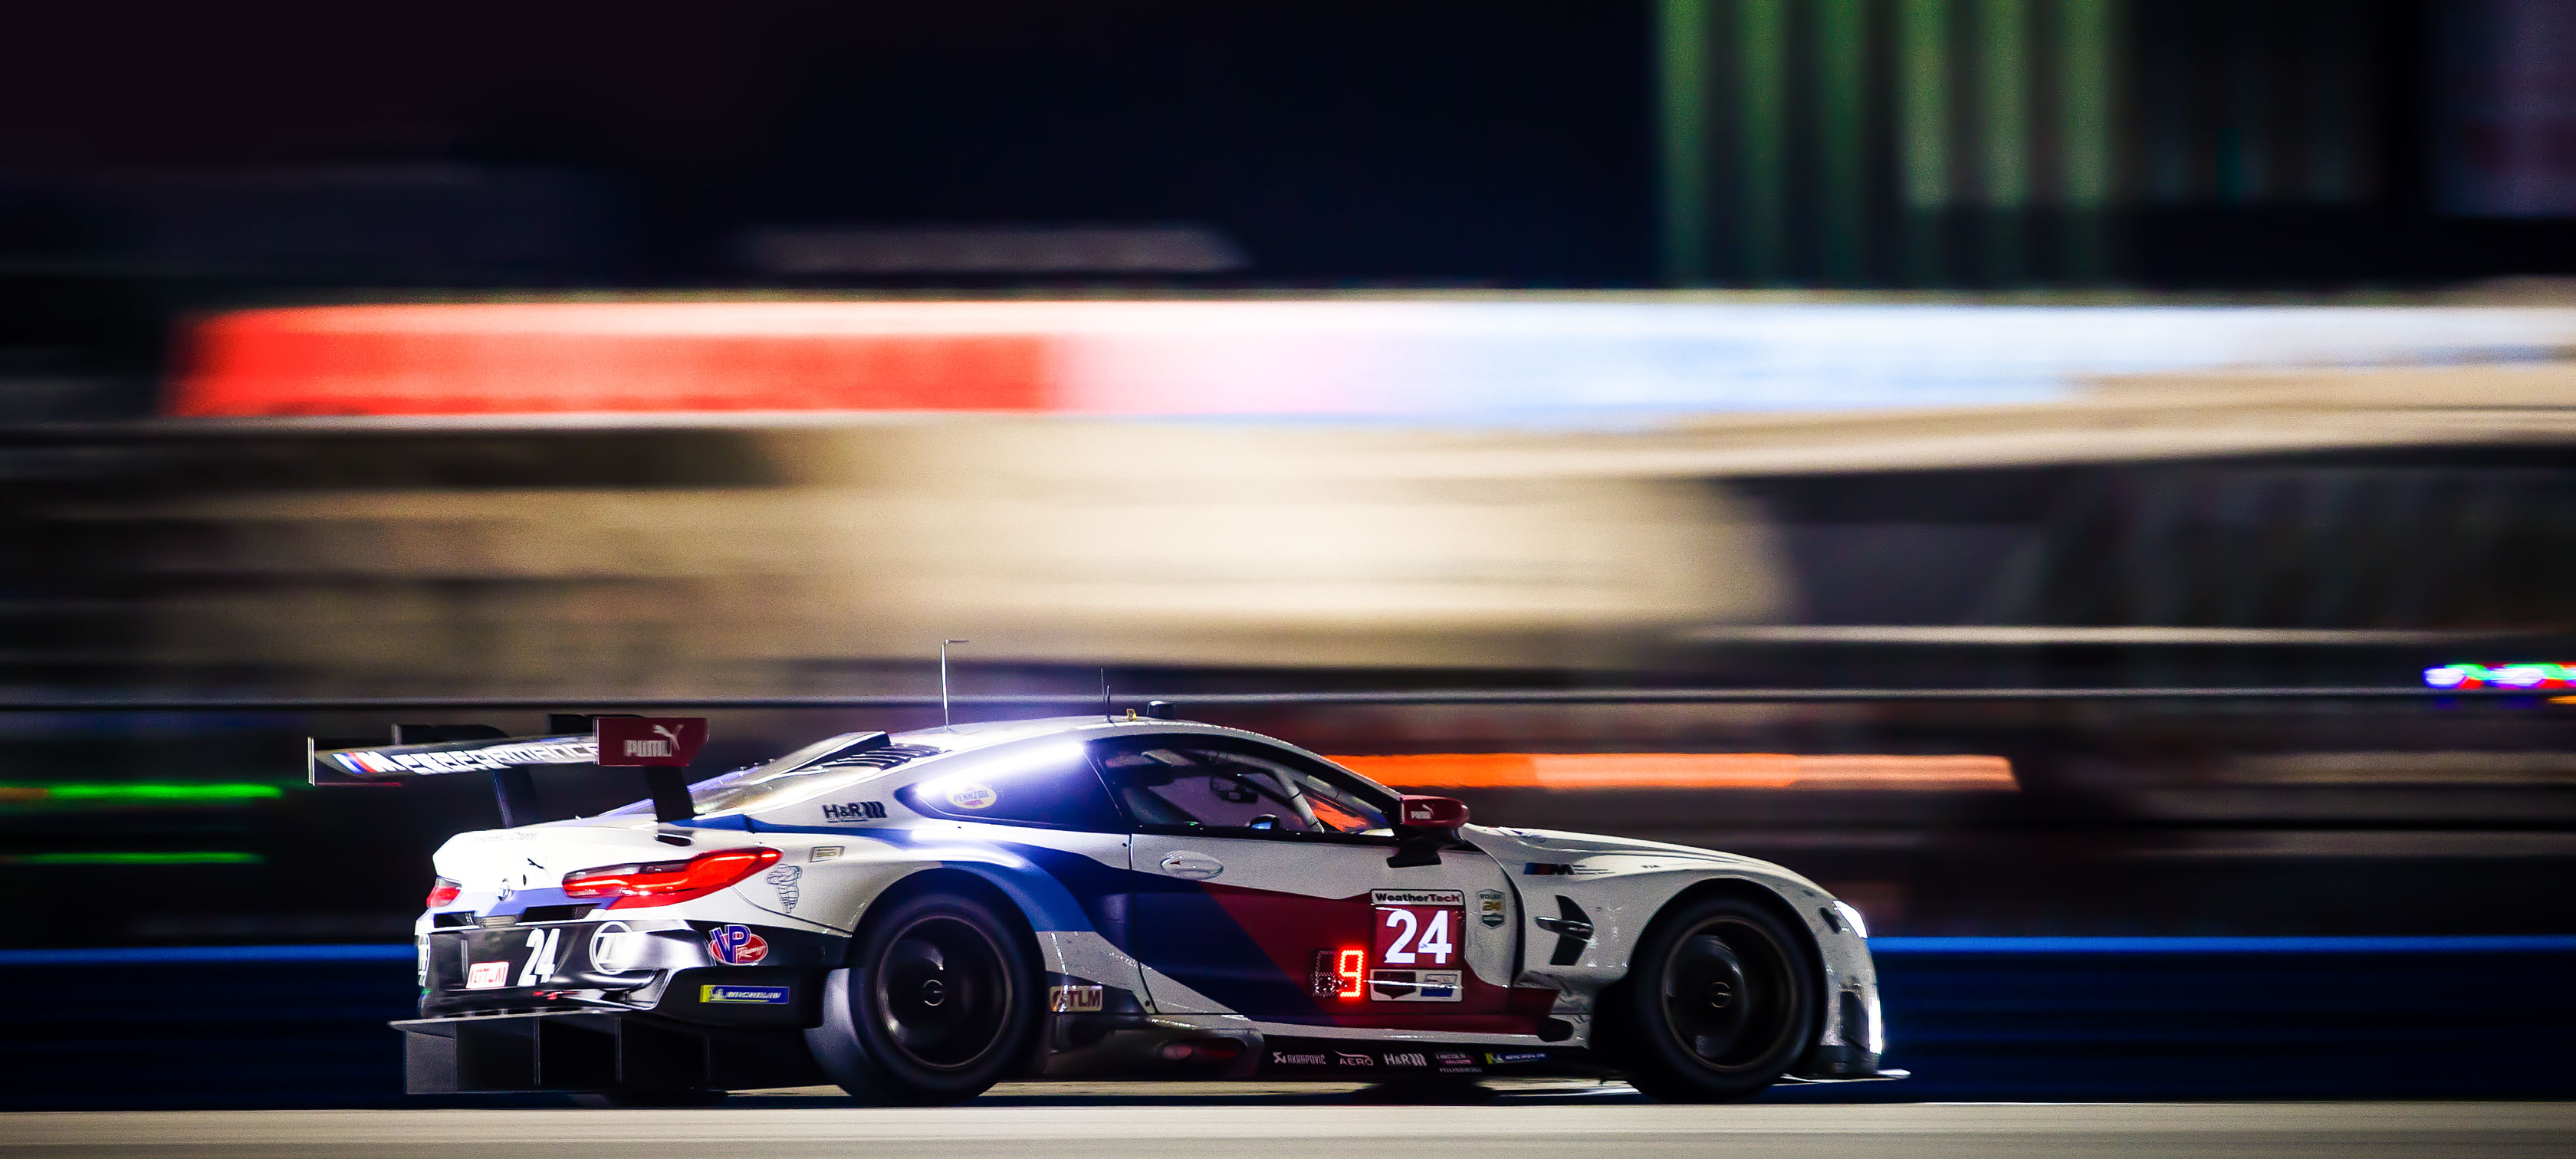 A BMW Motorsport race car is driving through the night.